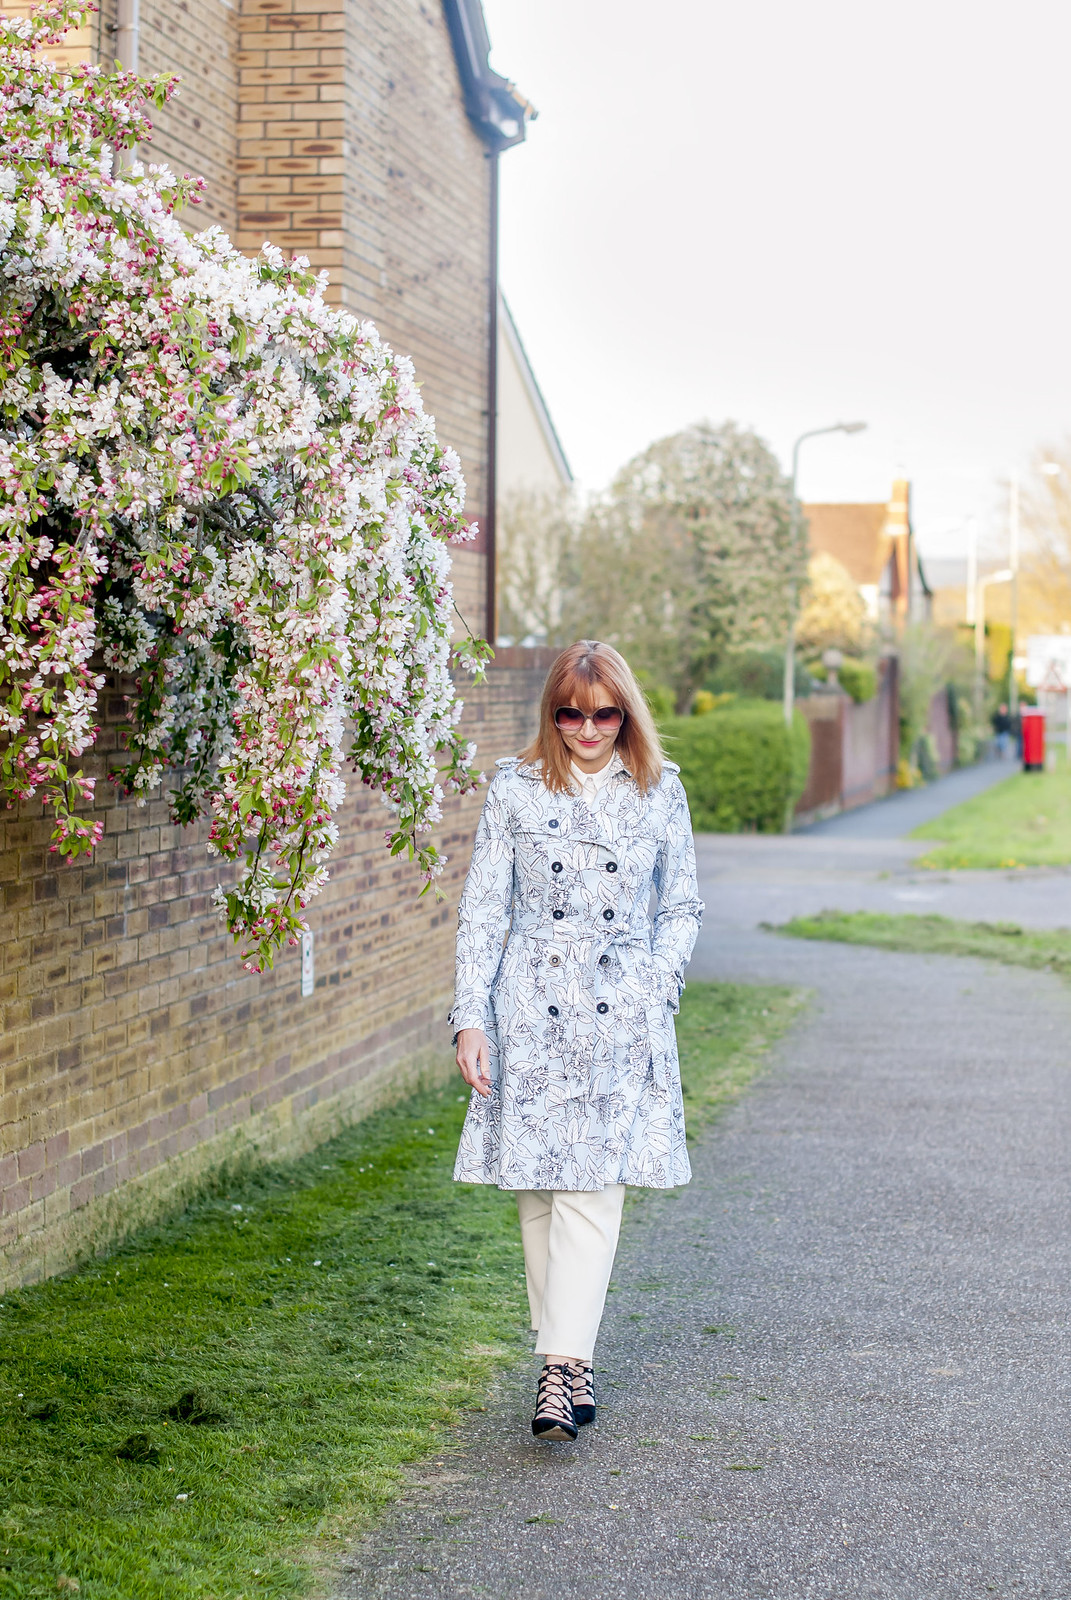 Spring fashion: Blue floral trench coat white trousers black lace-up ghillie shoes oversized 70s sunglasses | Not Dressed As Lamb, over 40 style